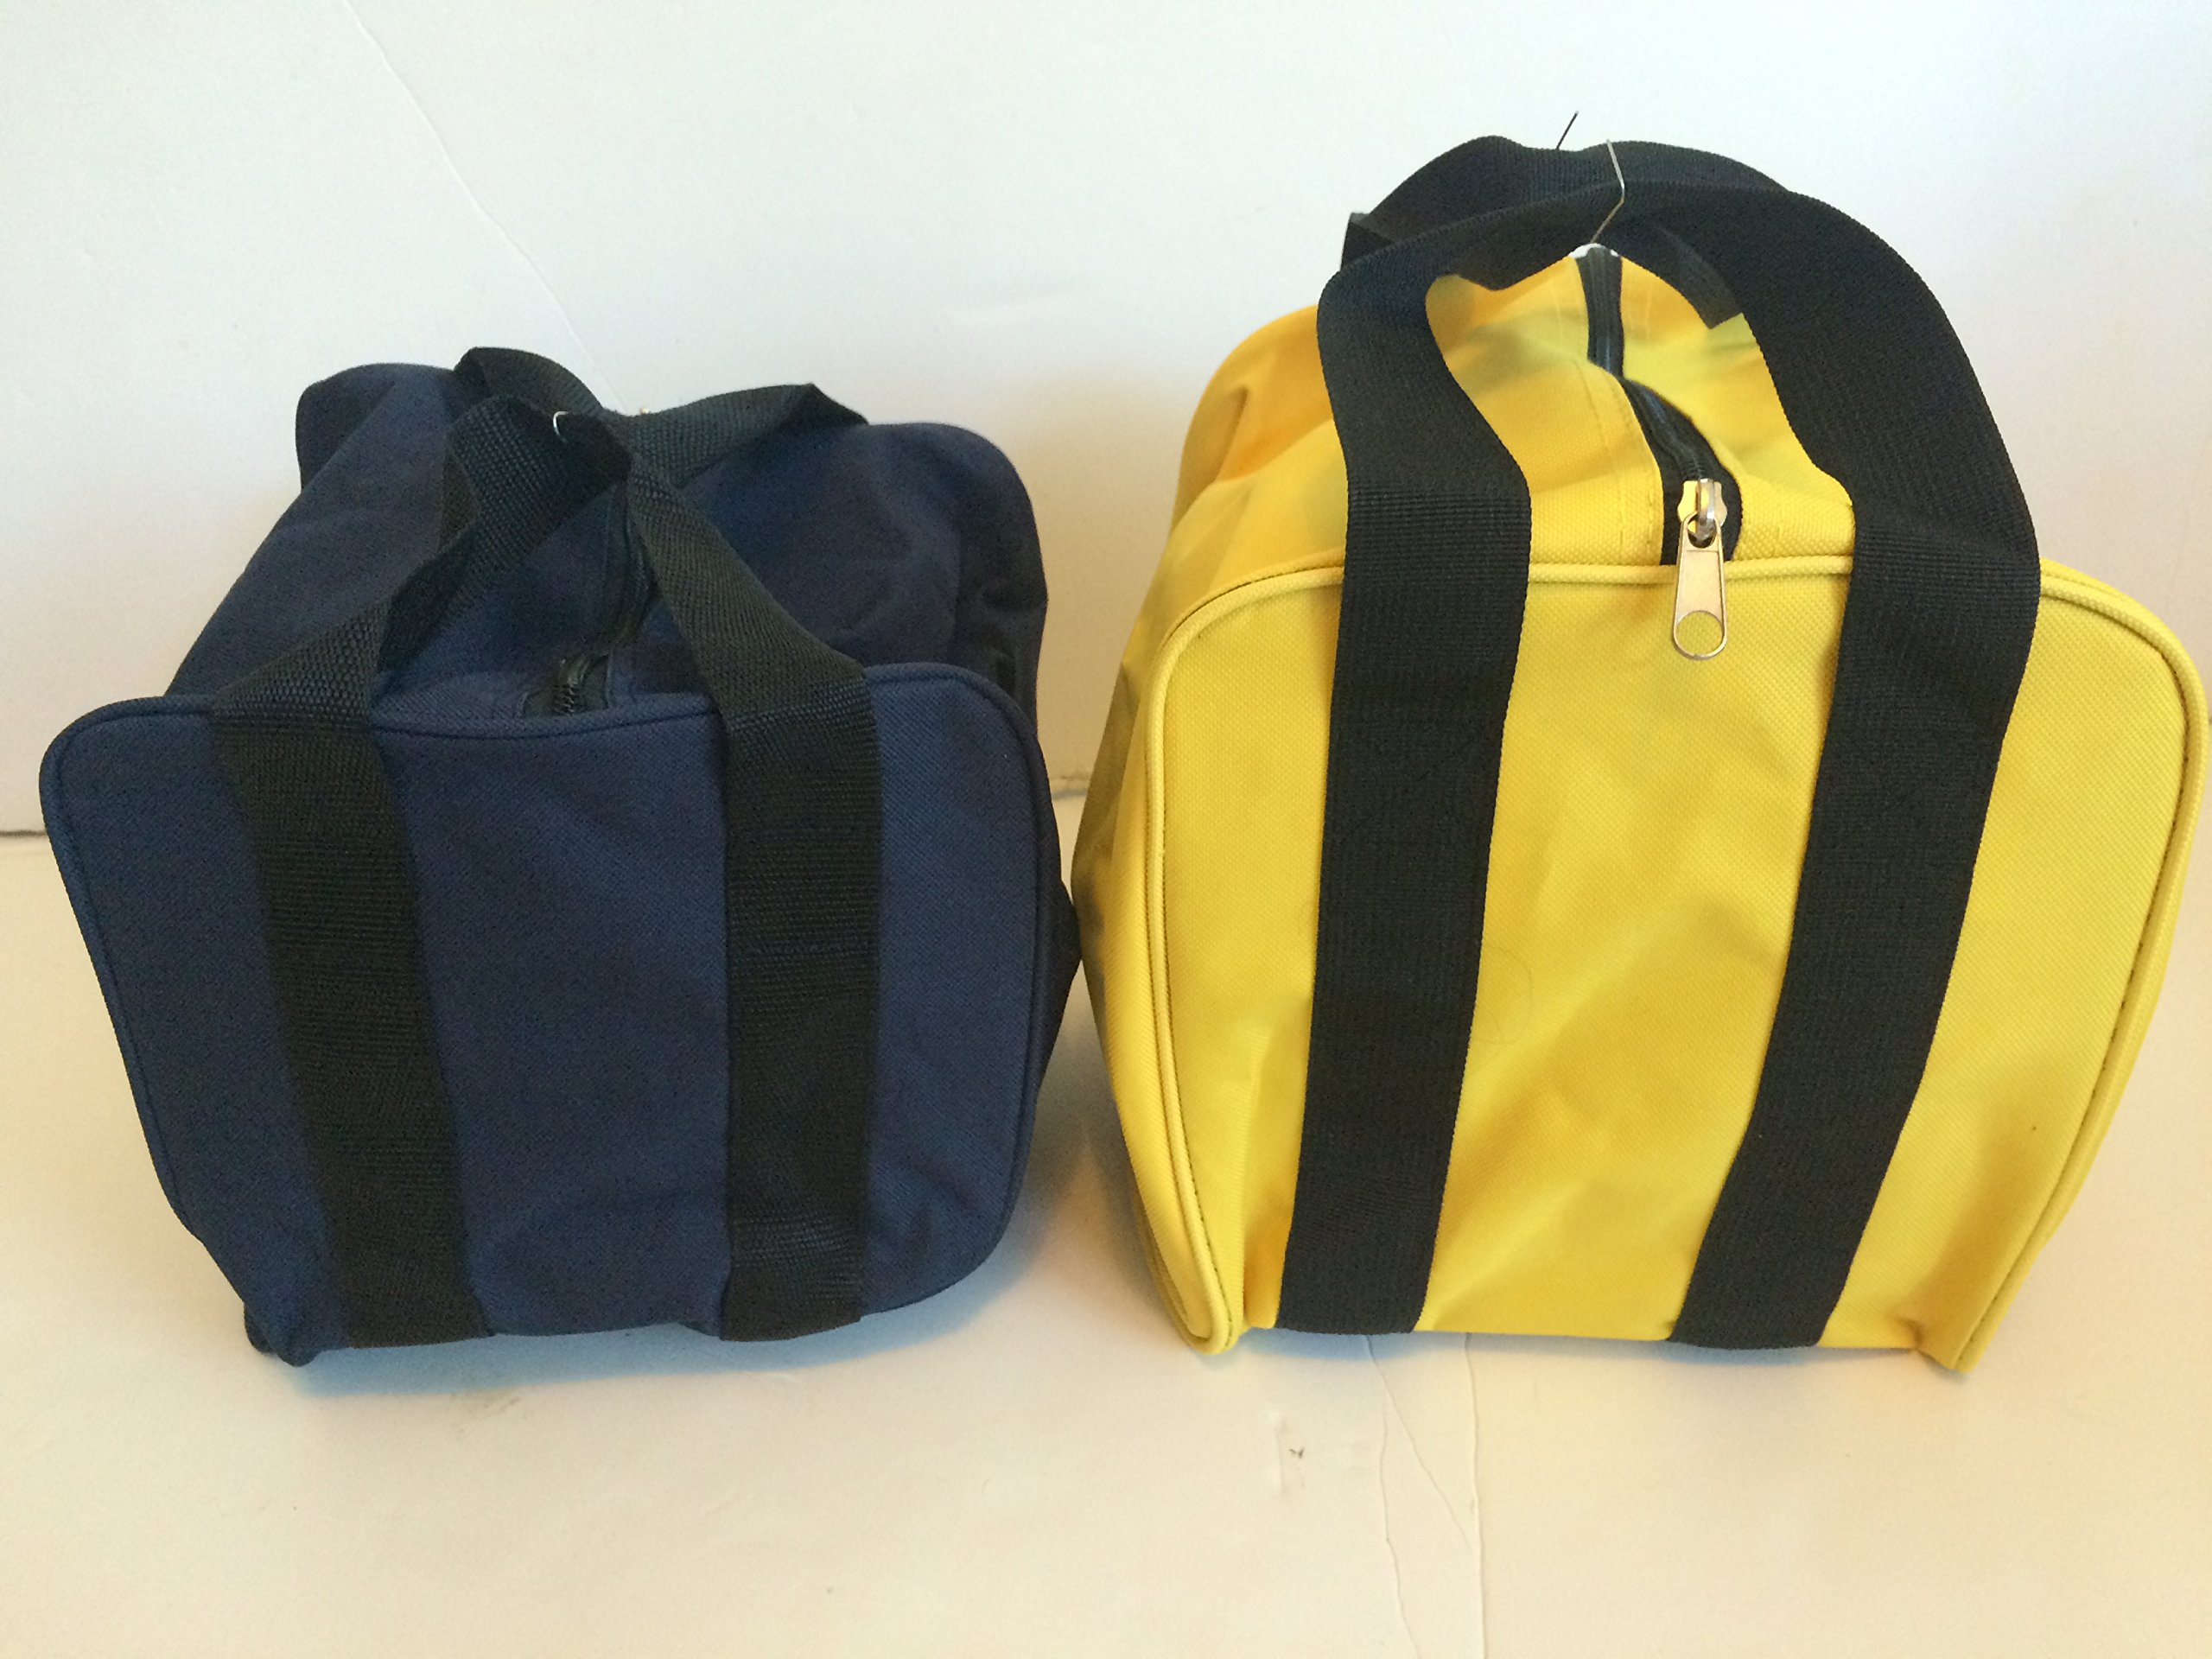 Unique Package - Pack of 2 Extra Heavy Duty Nylon Bocce Bags - Blue with Black Handles and Yellow with Black Handles